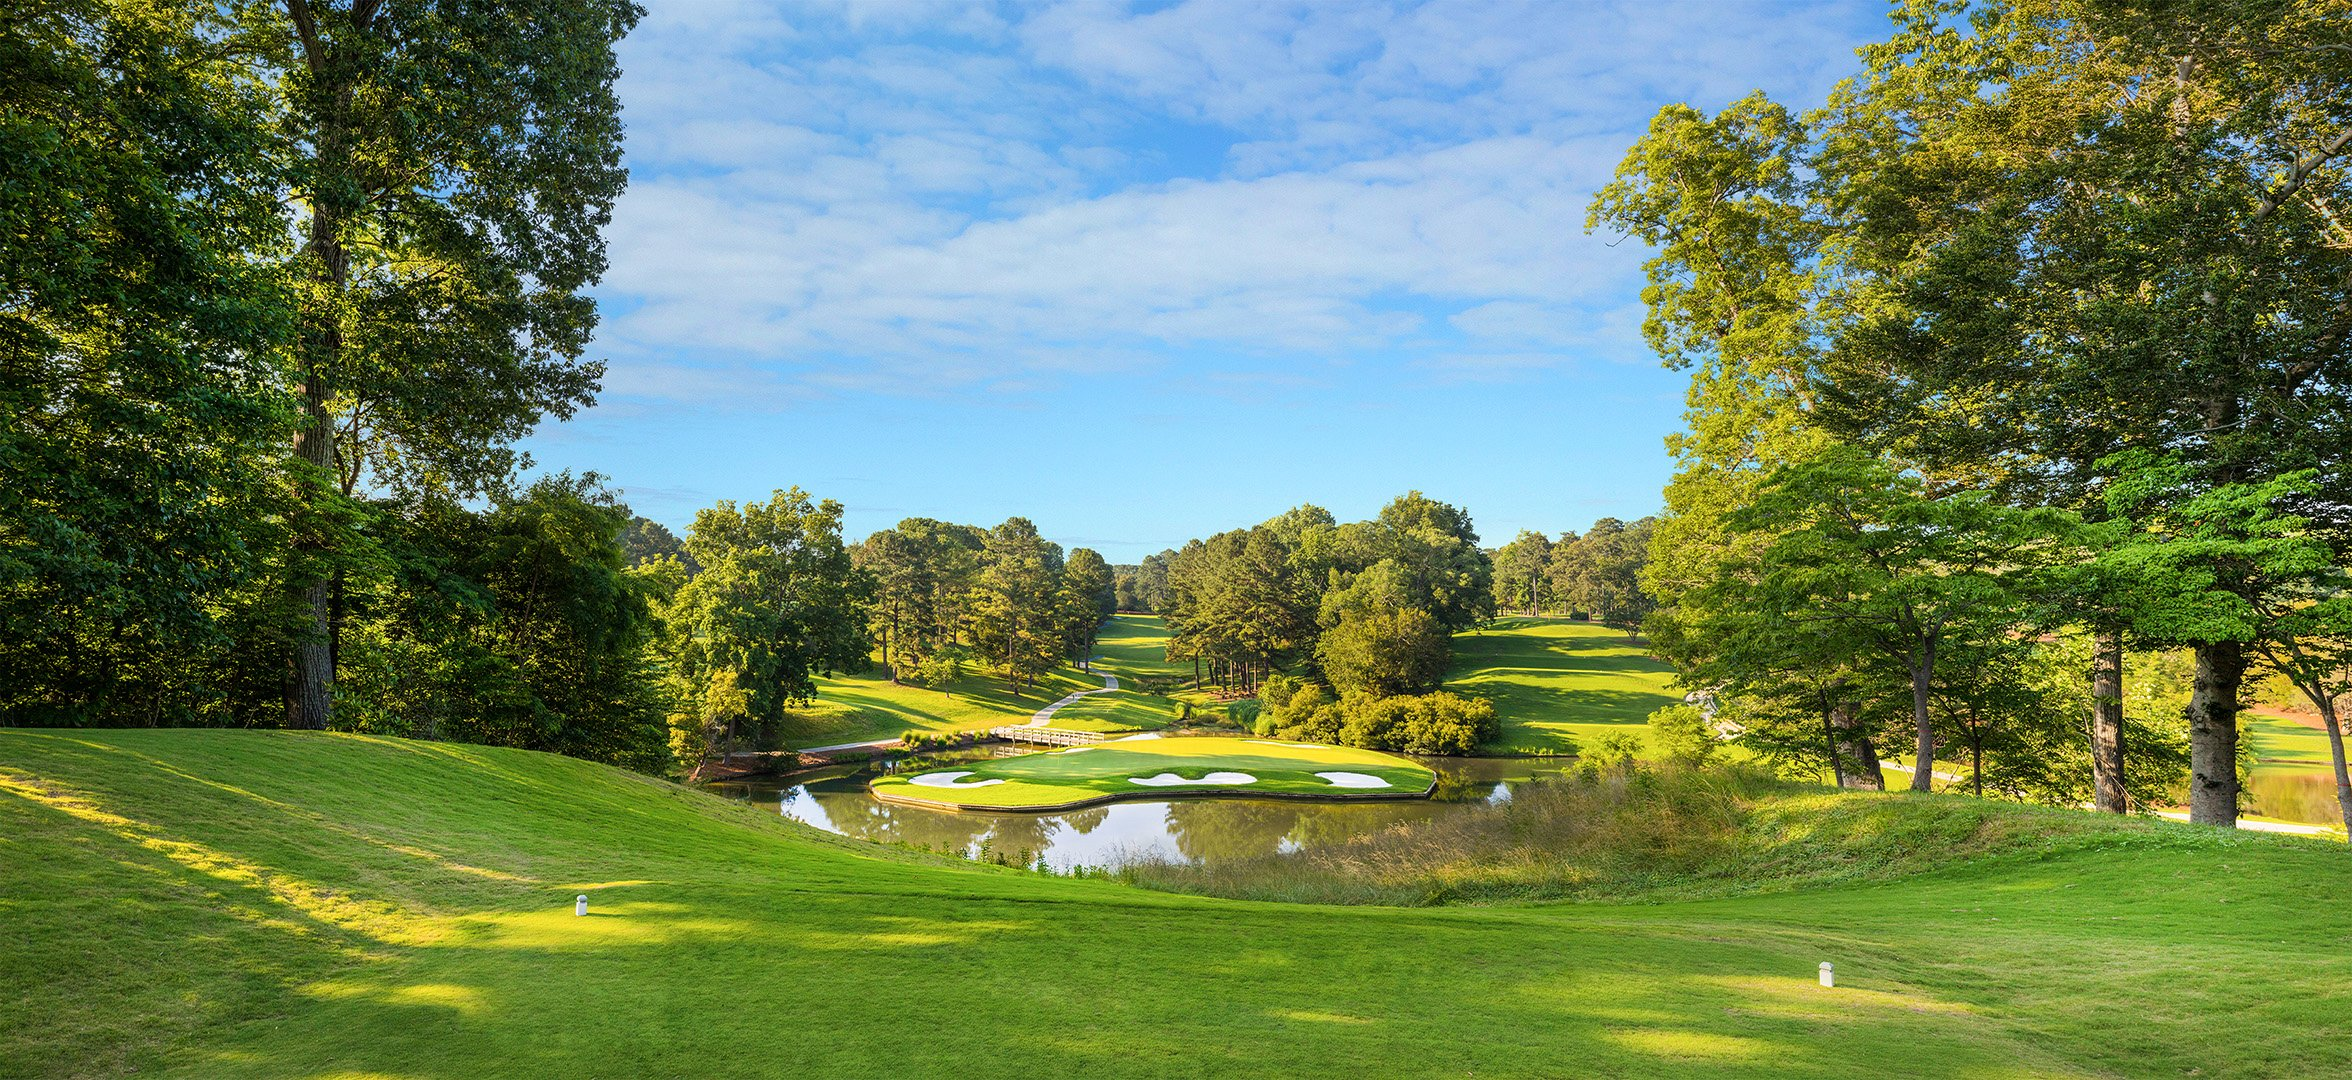 Panoramic view of Gold Course at Colonial Williamsburg, VA